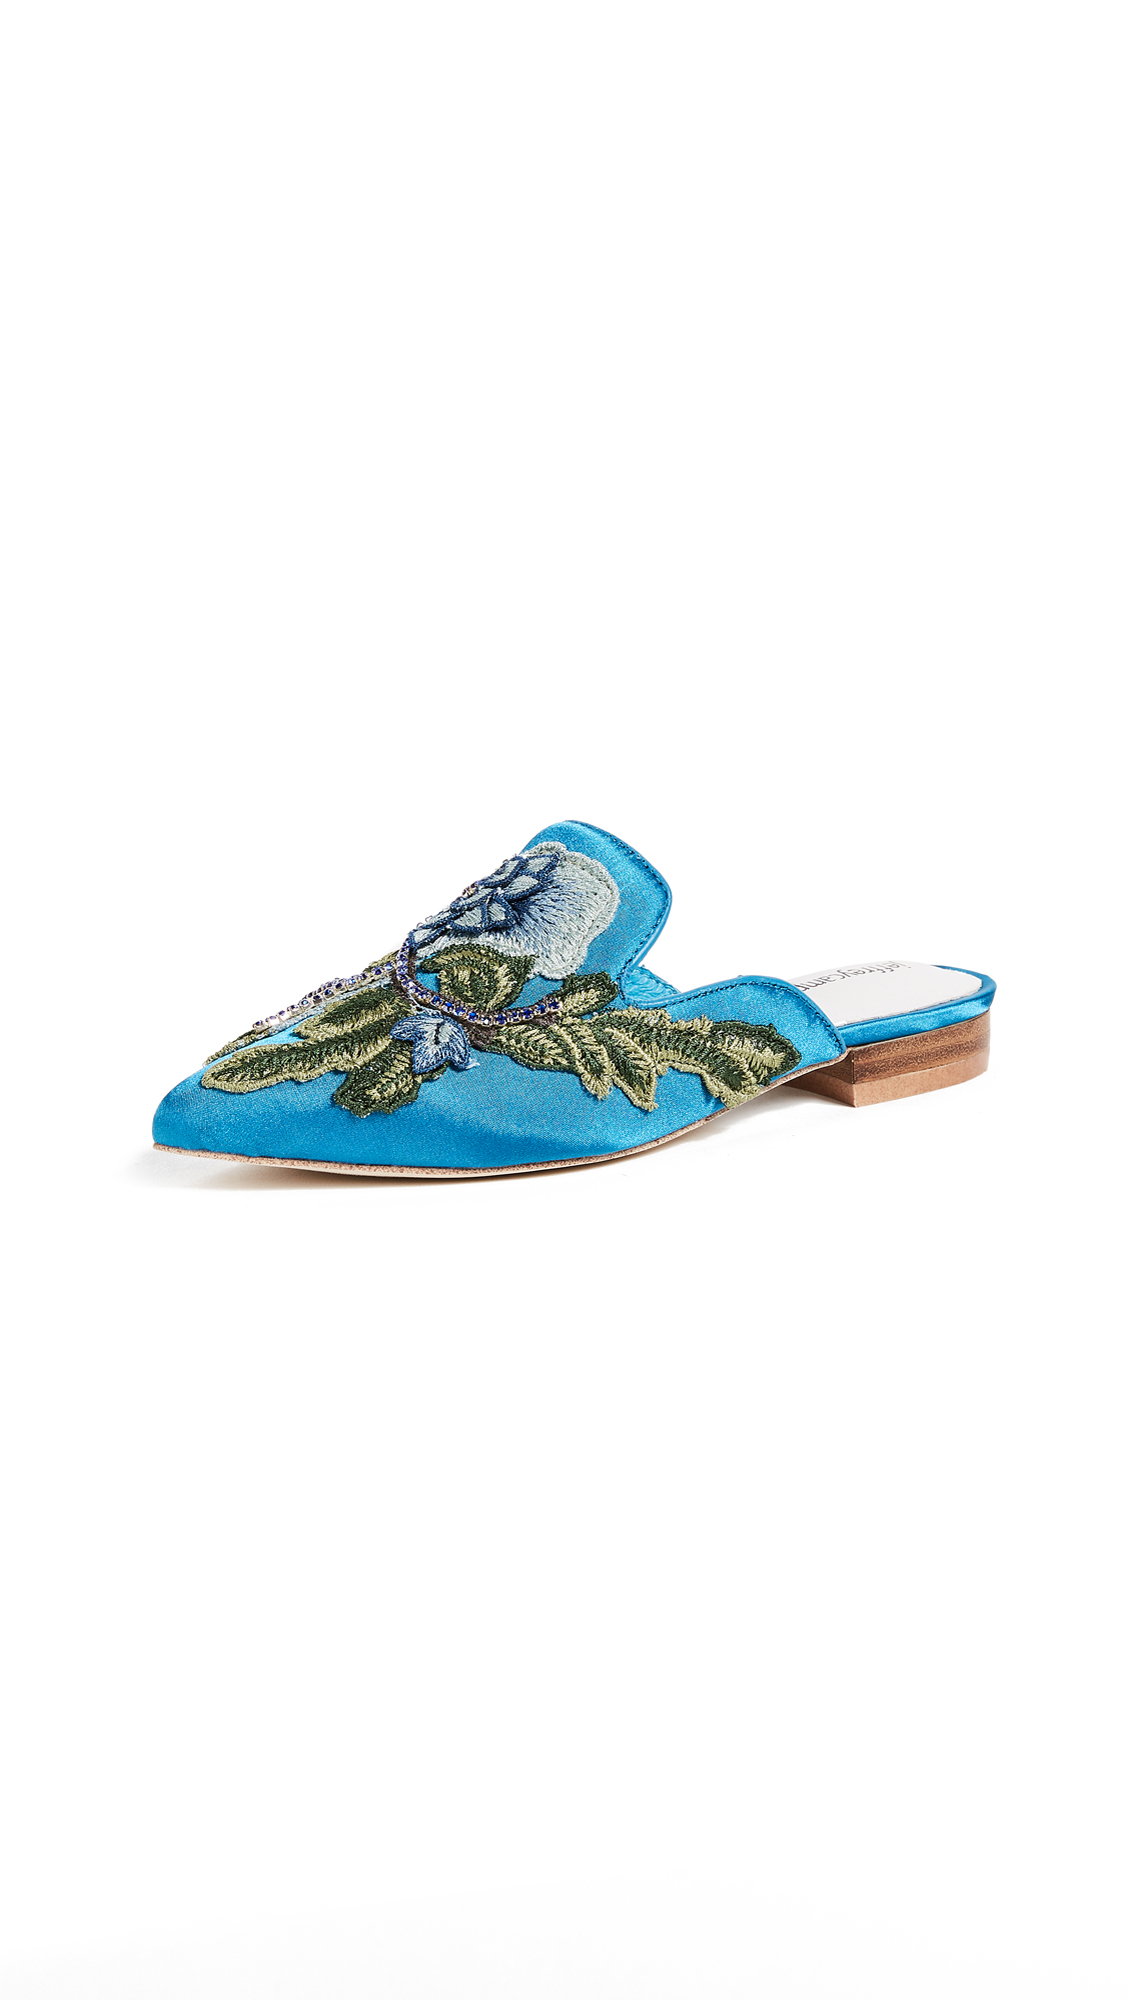 Jeffrey Campbell Claes Point Toe Mules - Blue